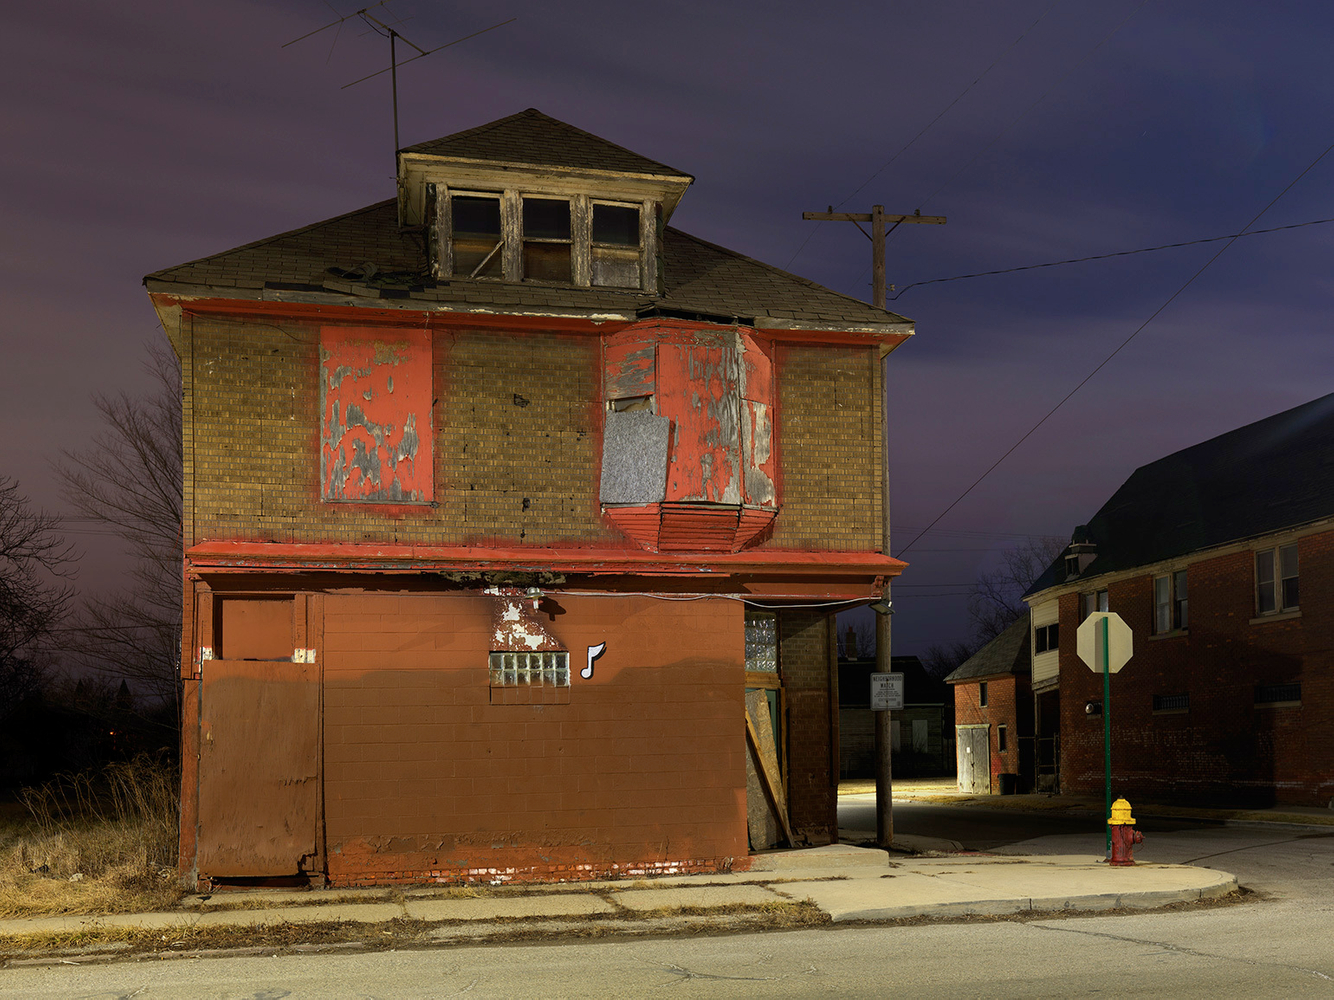 One Note House, Chene Street, Polsetown, Eastside, Detroit 2016